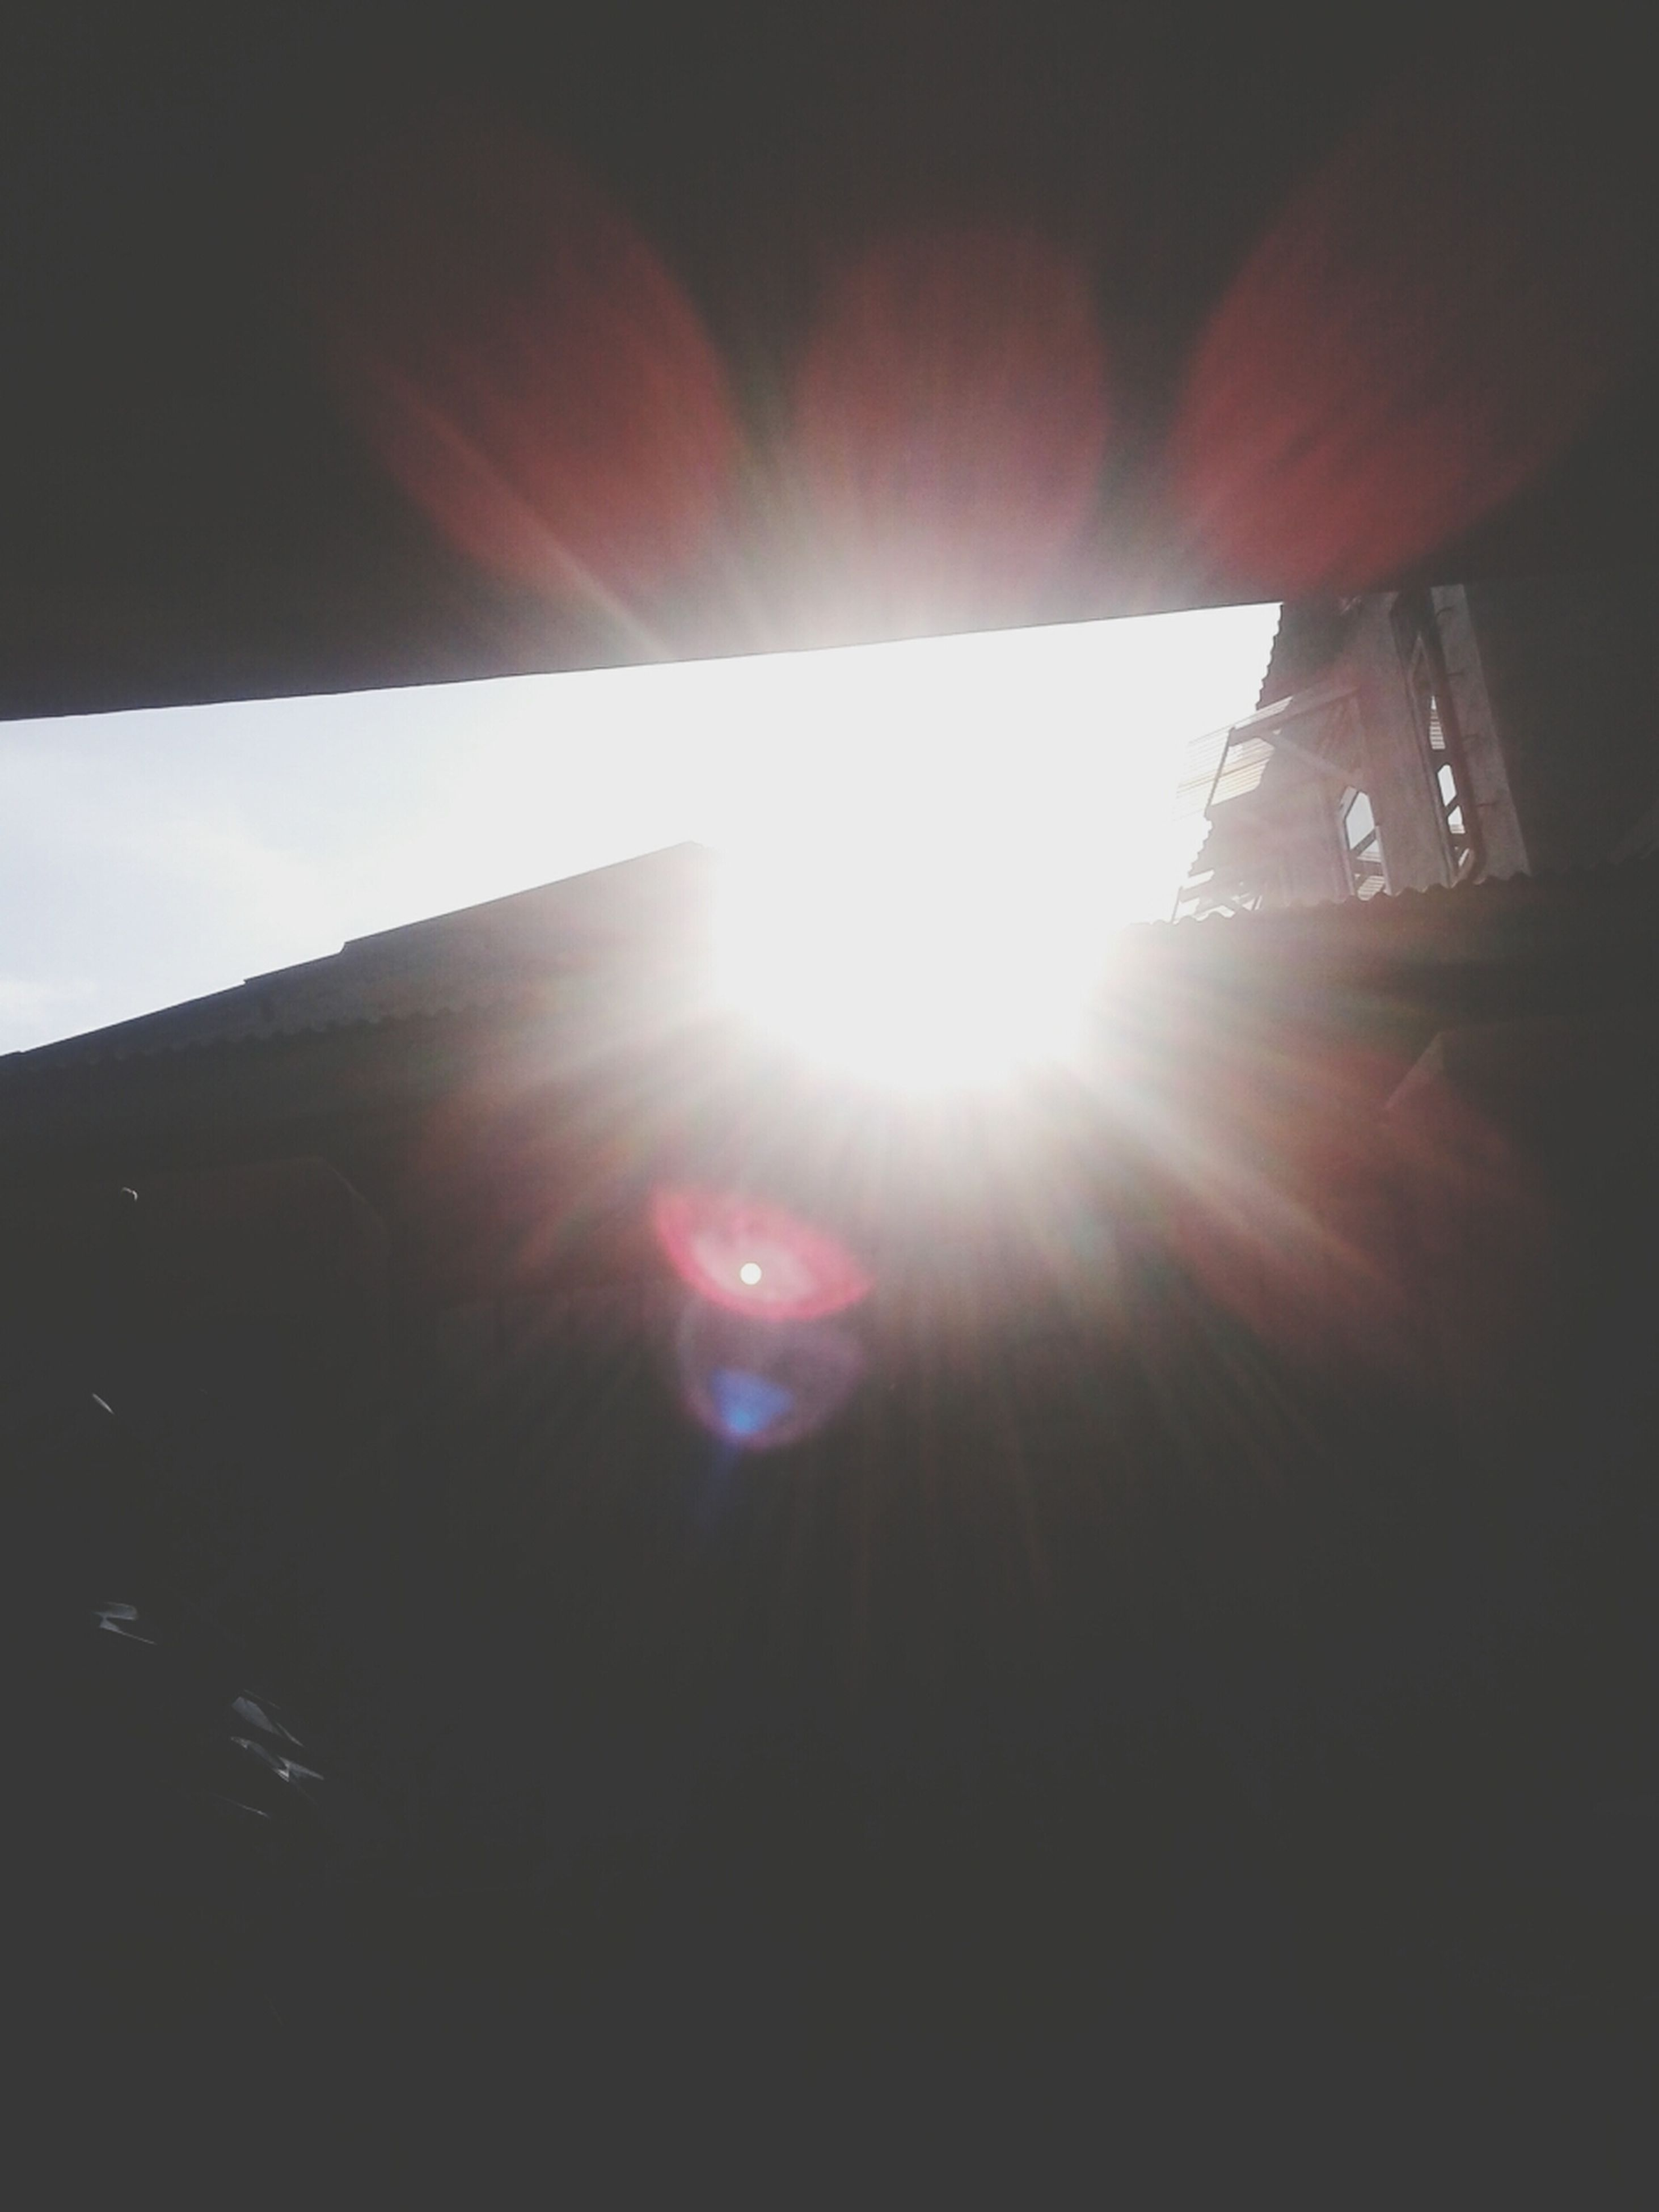 sun, sunbeam, lens flare, sunlight, bright, low angle view, sunny, transportation, built structure, sky, architecture, window, brightly lit, day, mode of transport, car, building exterior, glass - material, no people, outdoors